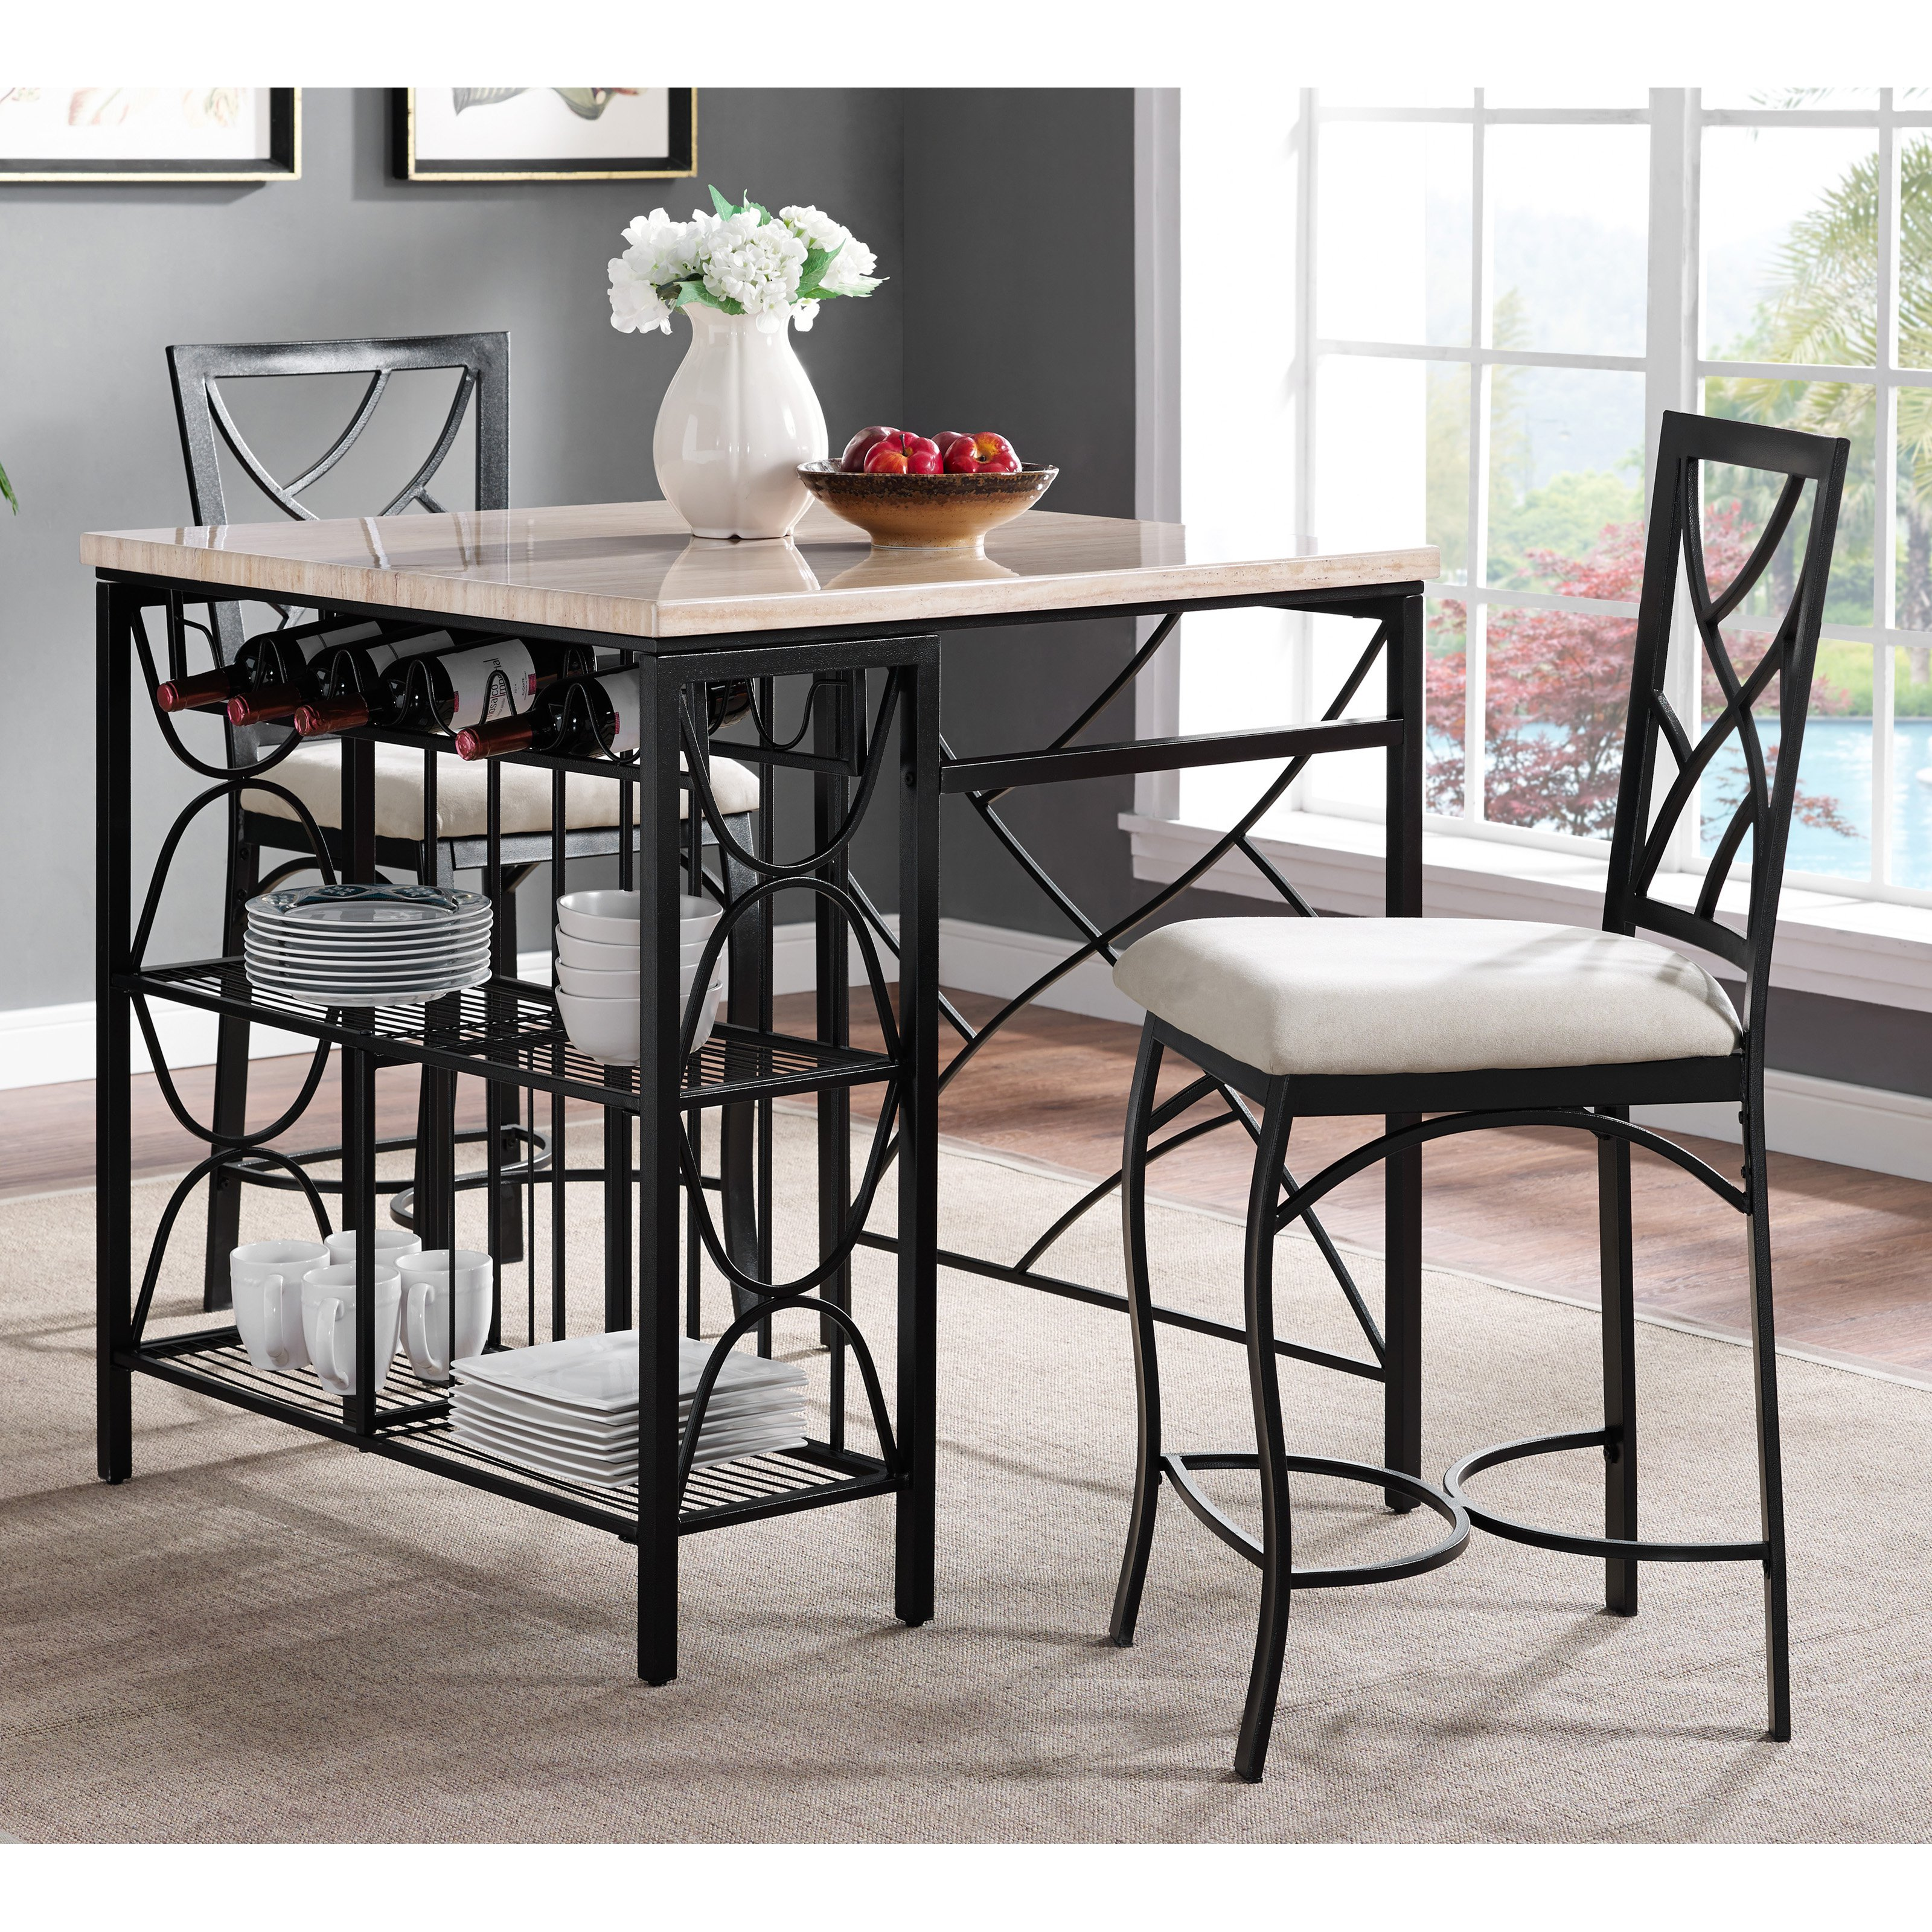 counter height chairs for kitchen island bernards kitchen island with 2 counter height stools 9486